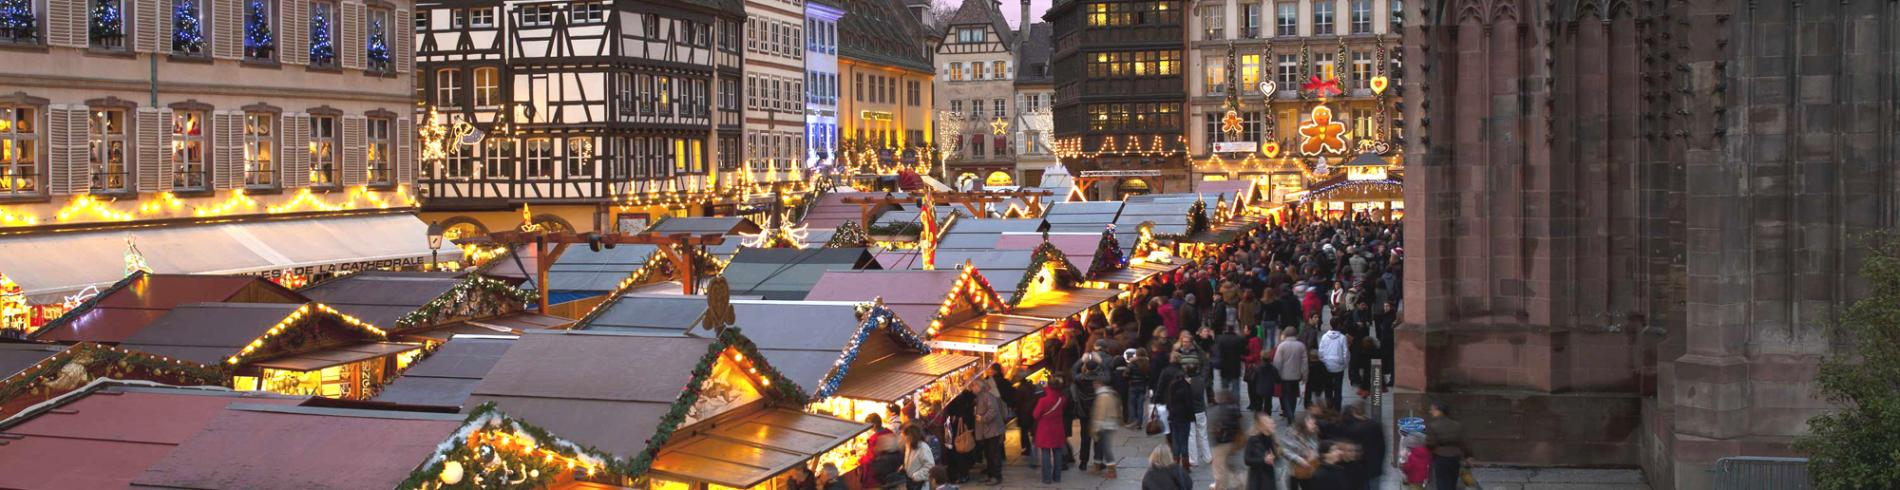 Christmas markets stalls around the cathedral by night